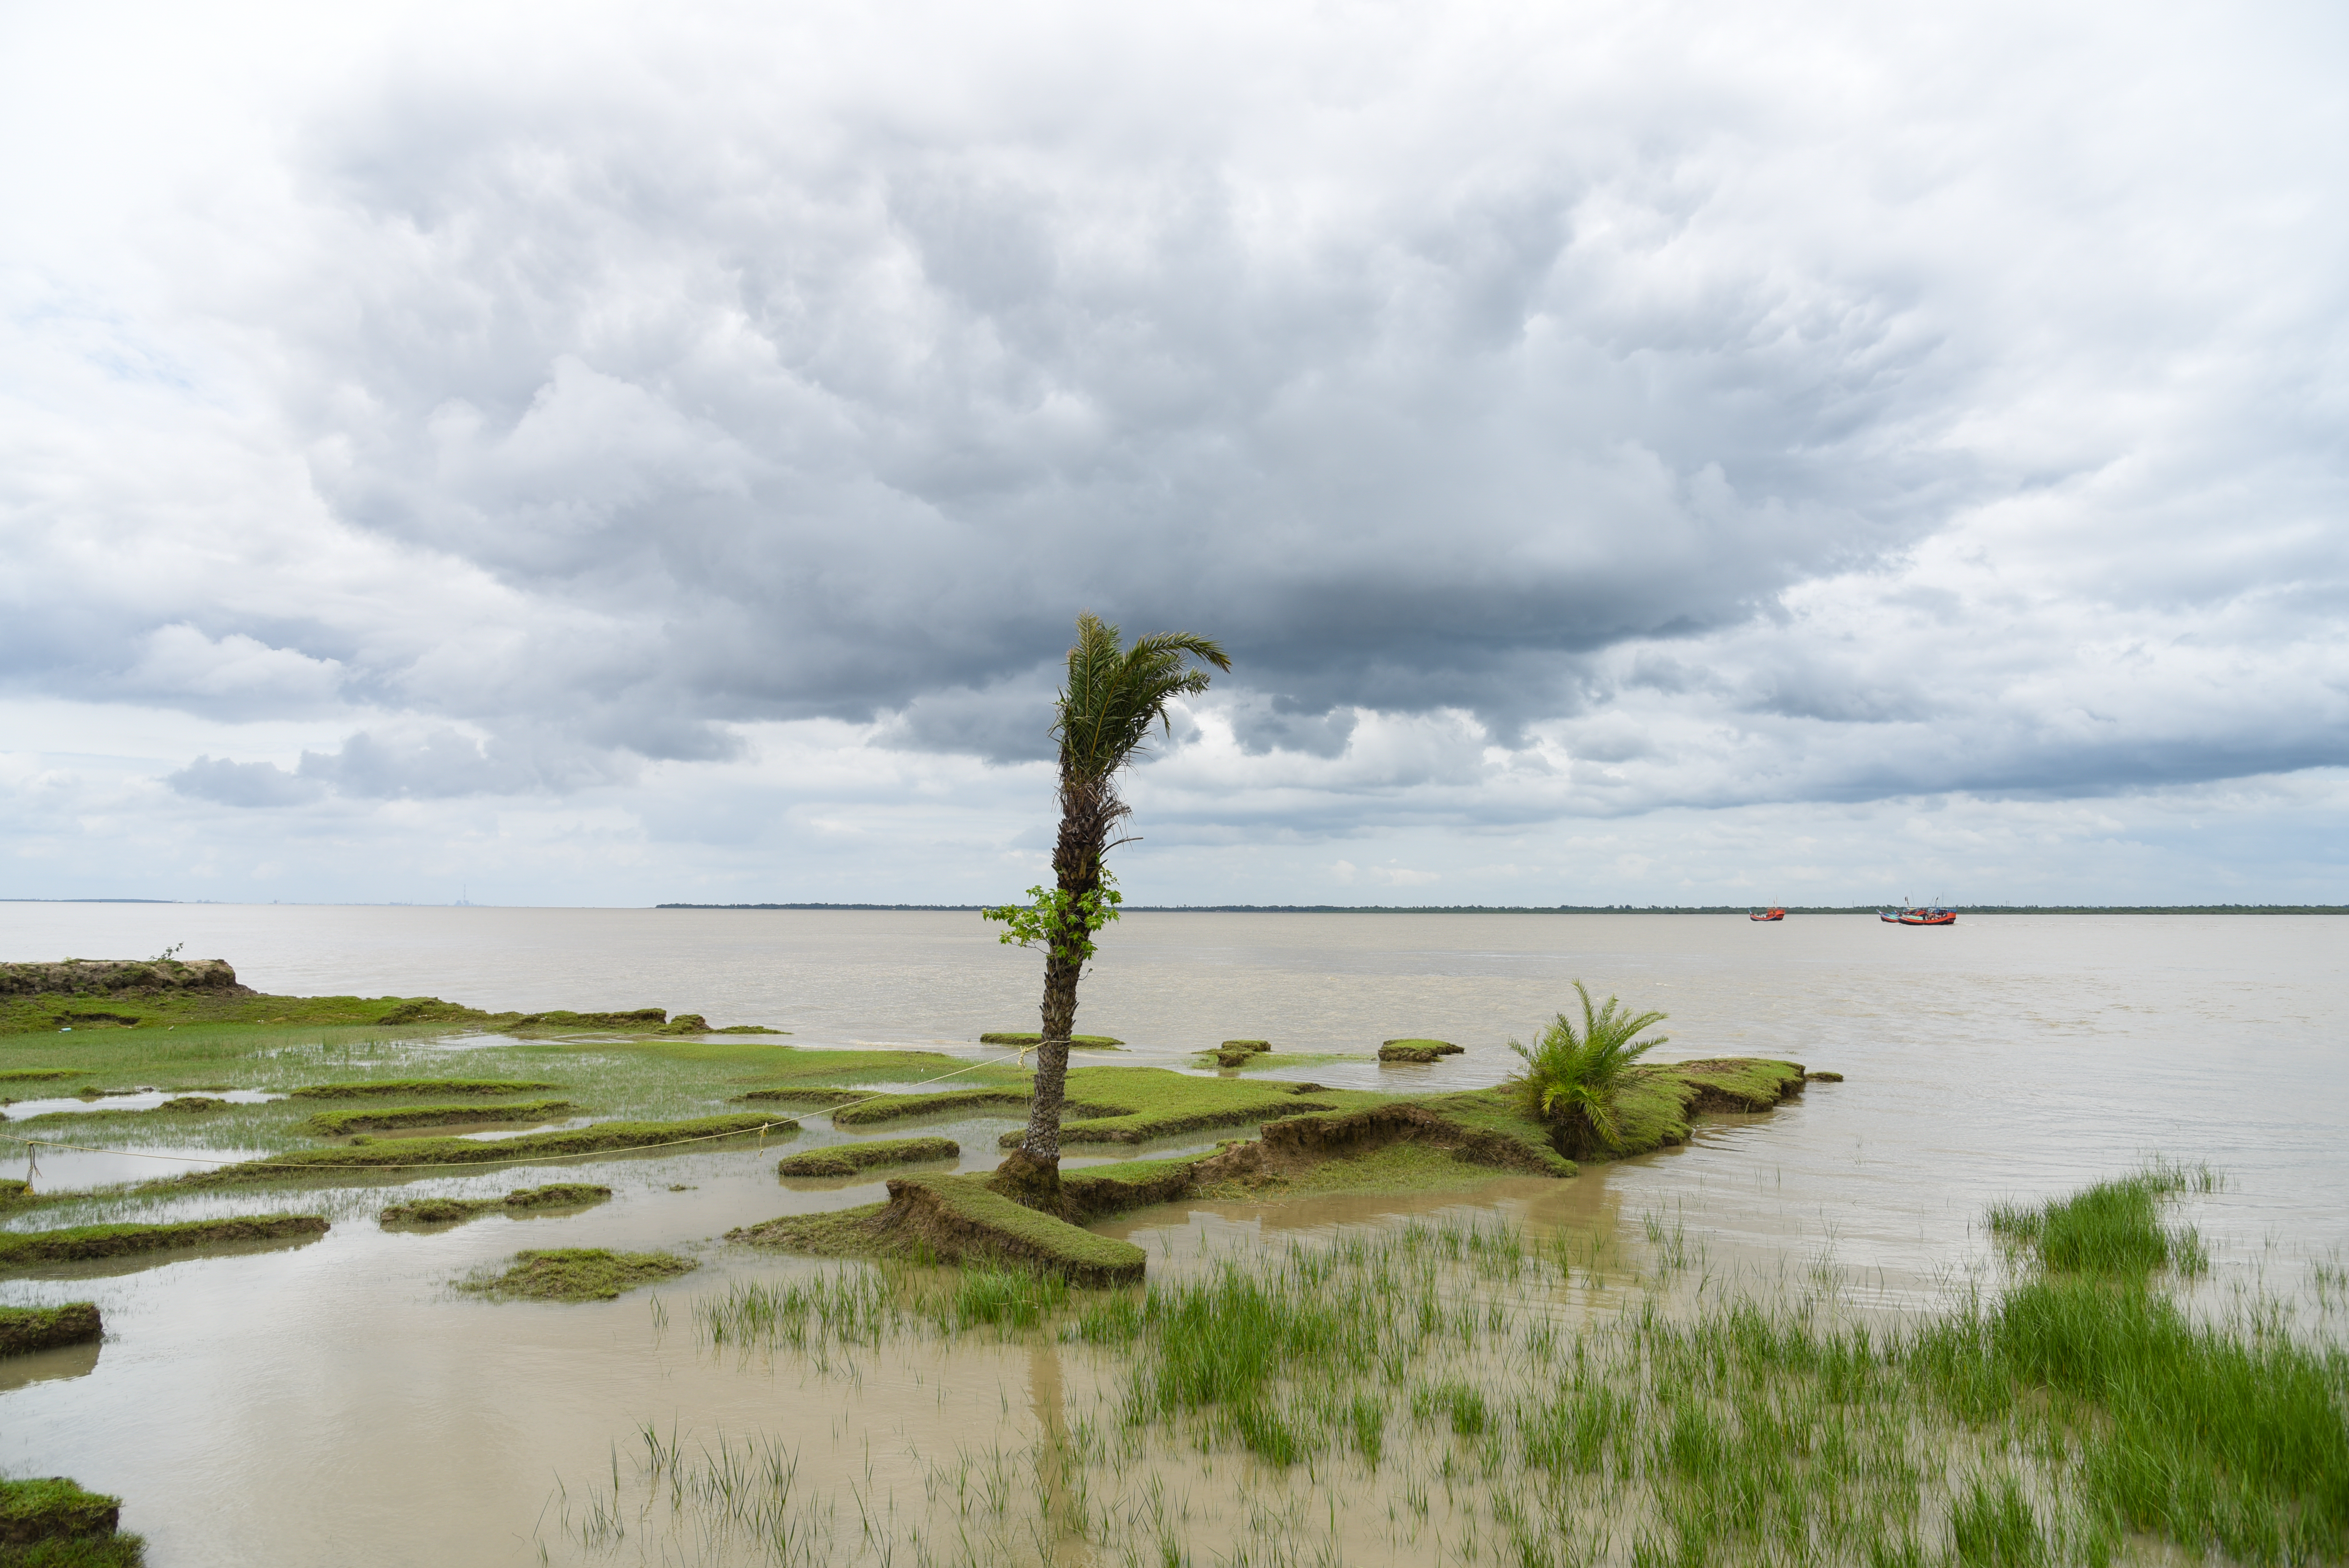 Ghoramara Island, near Kolkata, India, has lost 50 percent of its terrain to rising seas as a result of climate change, causing two-thirds of its population to move elsewhere. (Photo by Tanmoy Bhaduri/NurPhoto via Getty Images)